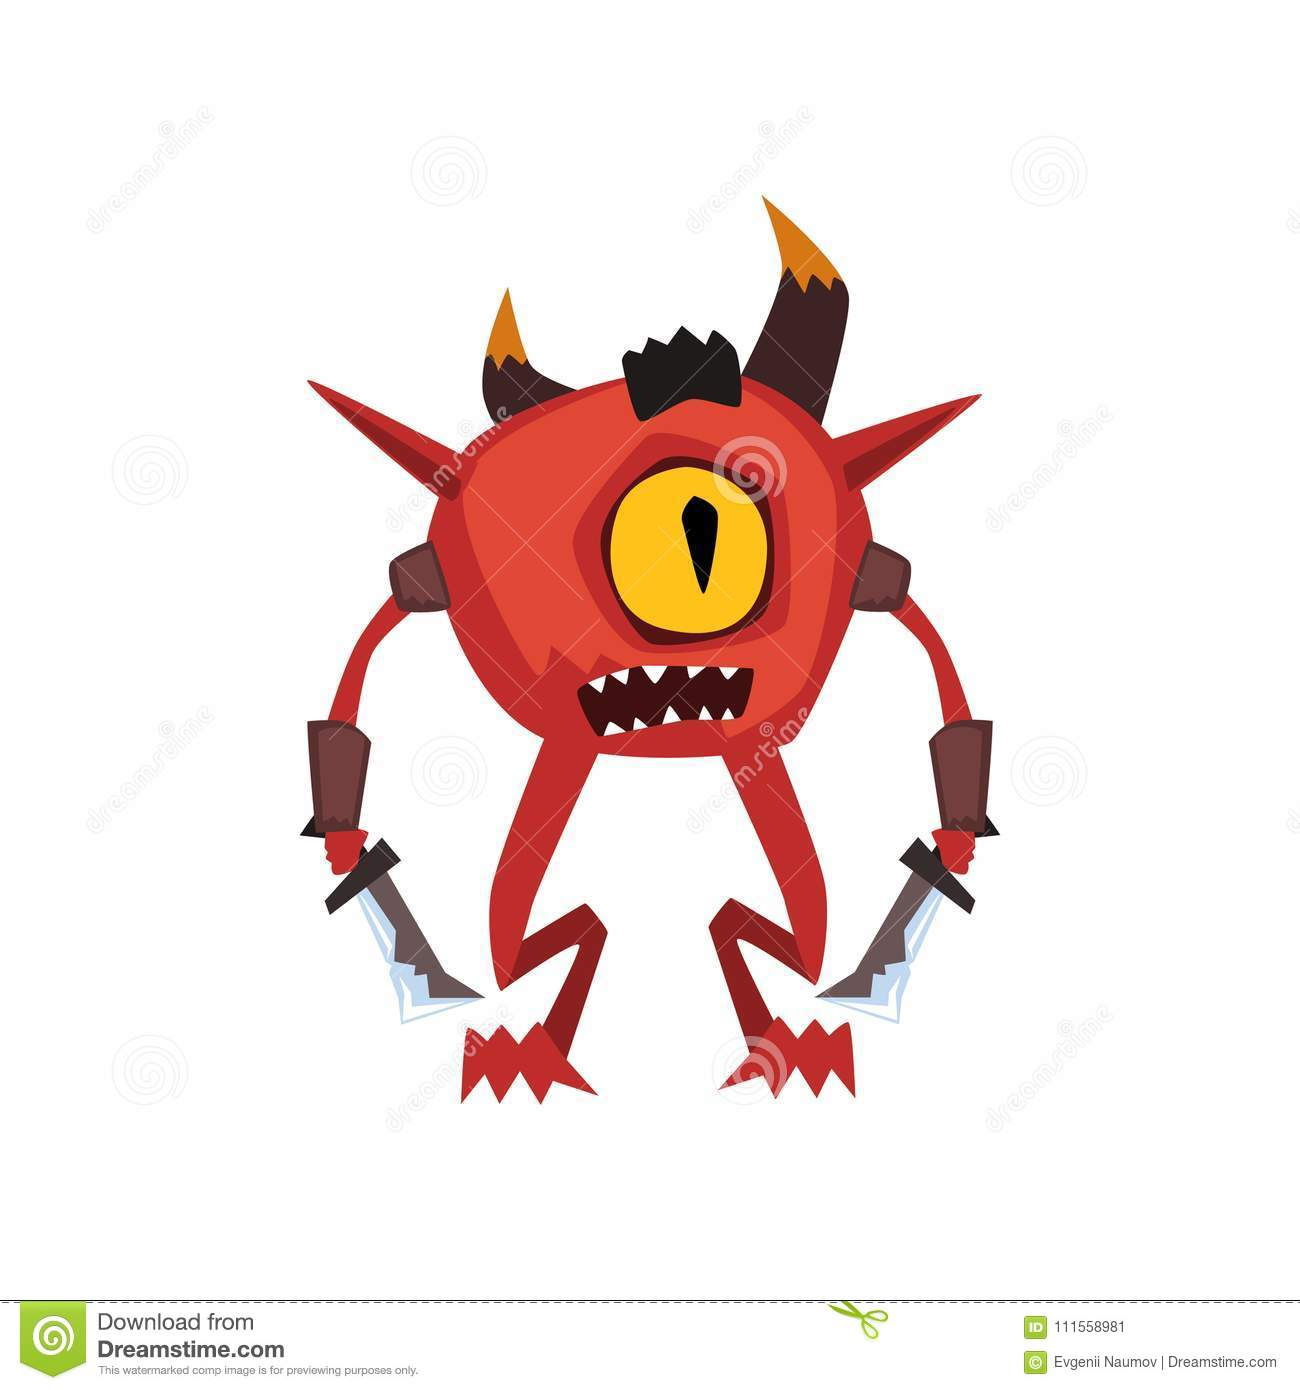 One eyed warrior monster fantasy magical creature character vector Illustration on a white background